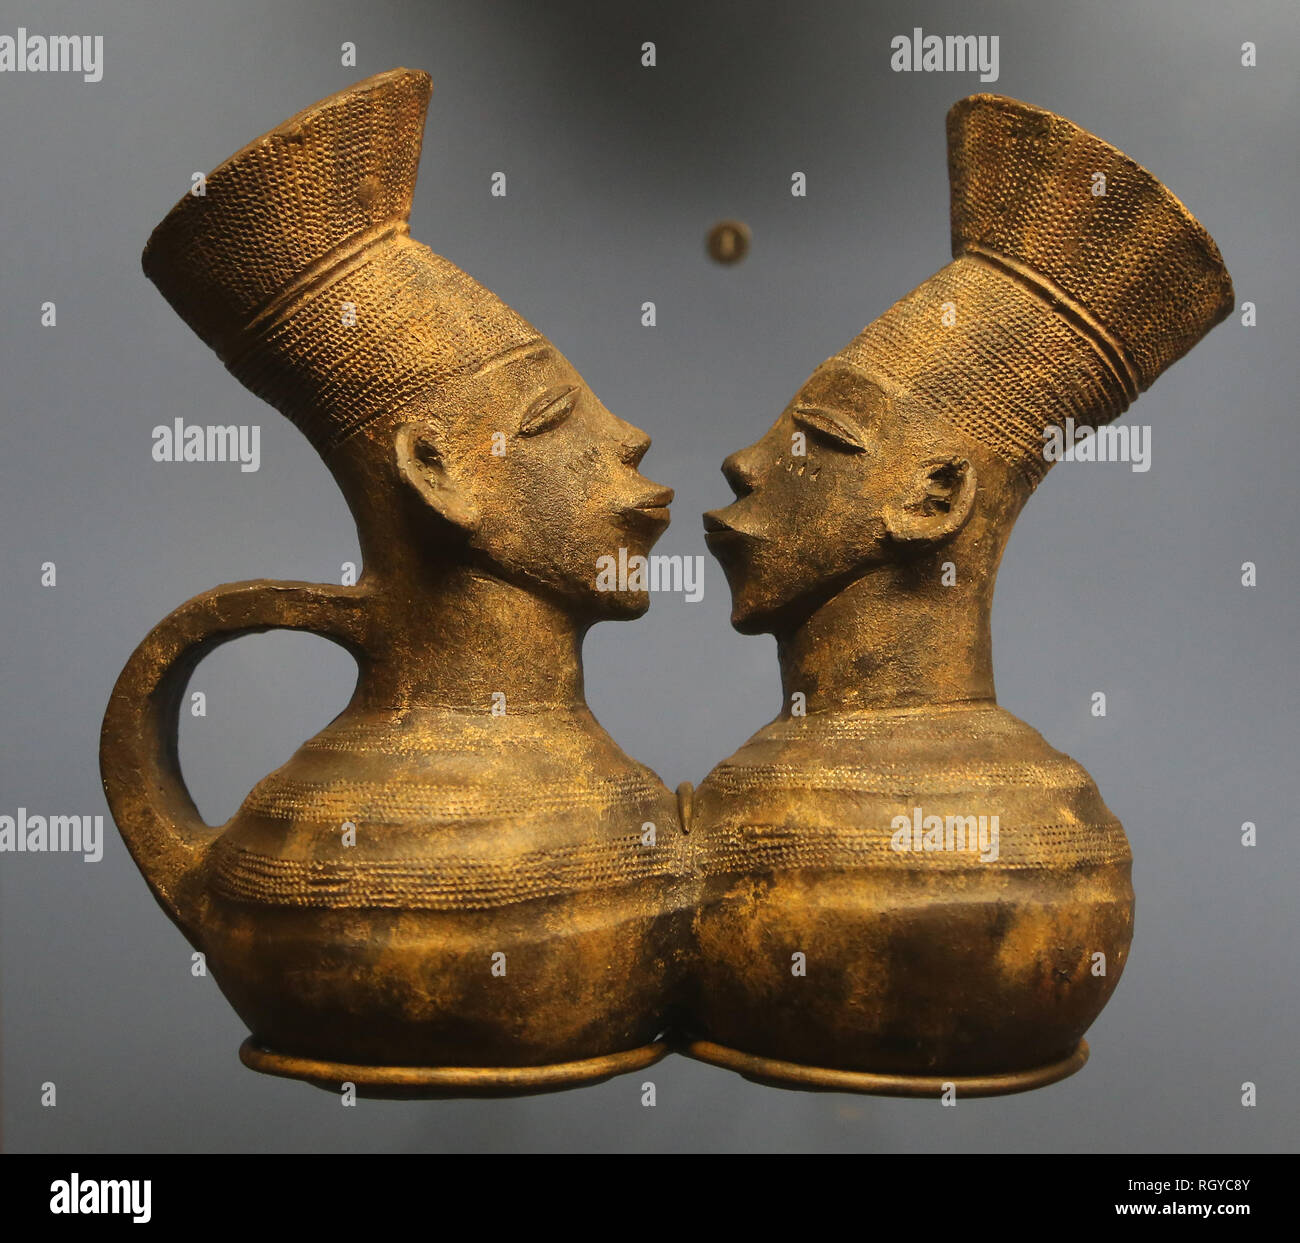 African object. Pottery, Mangbetu, Congo. American Museum of Natural History. NY. Unites States. - Stock Image